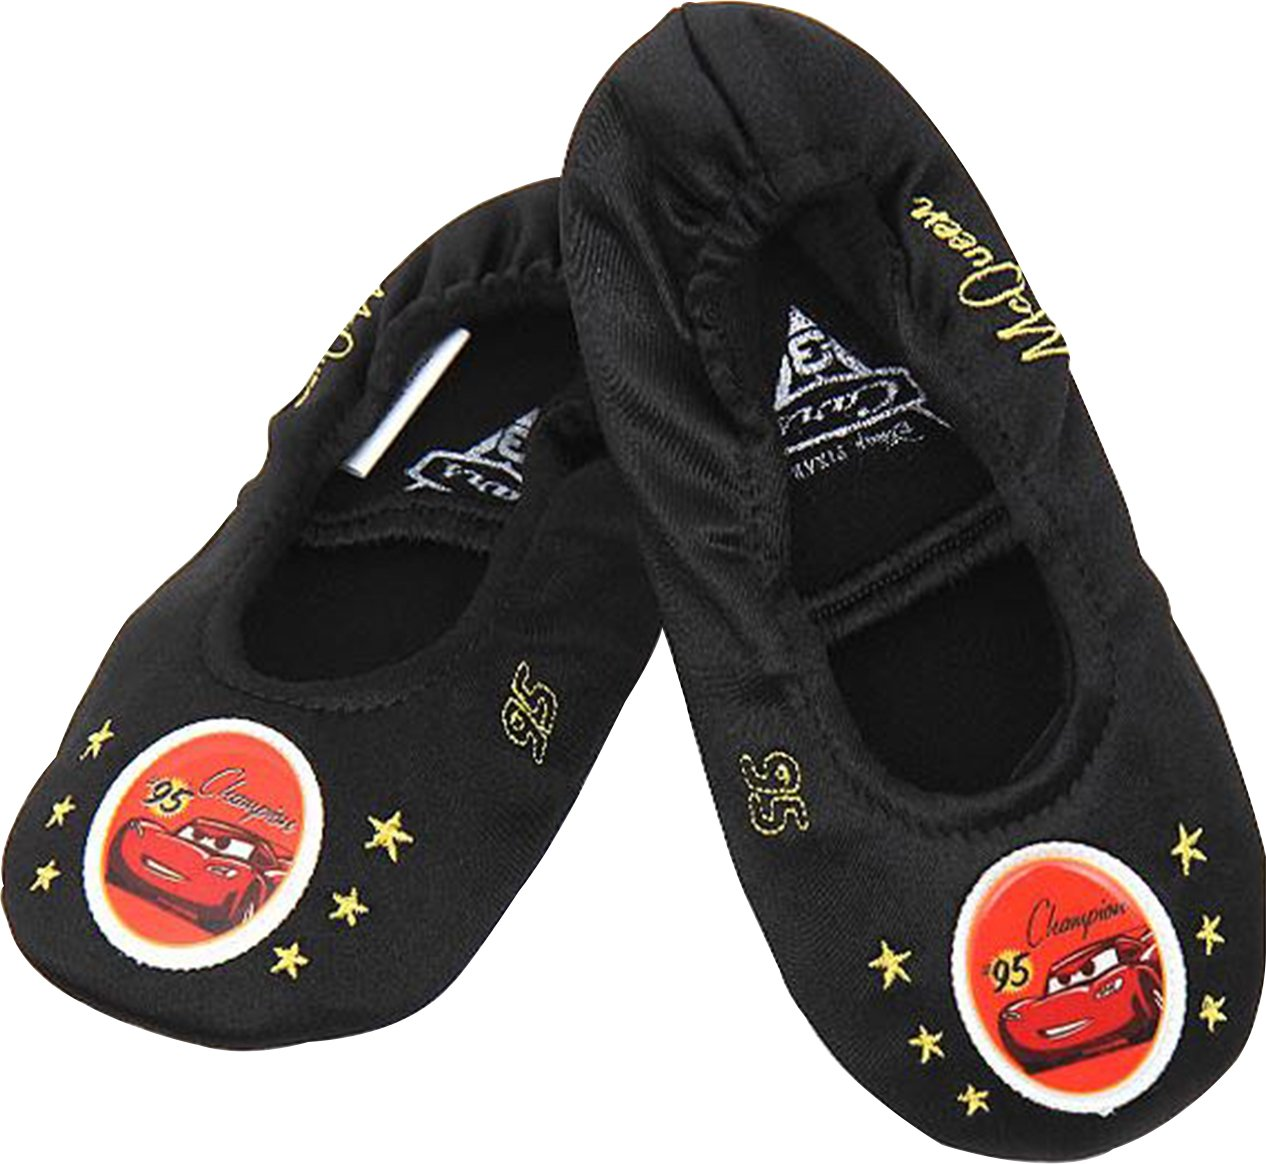 Disney Cars Boy's Girl's Black Ballet Flat Dance Shoes Runs Small (Parallel Import/Generic Product) (9.5 M US Toddler)